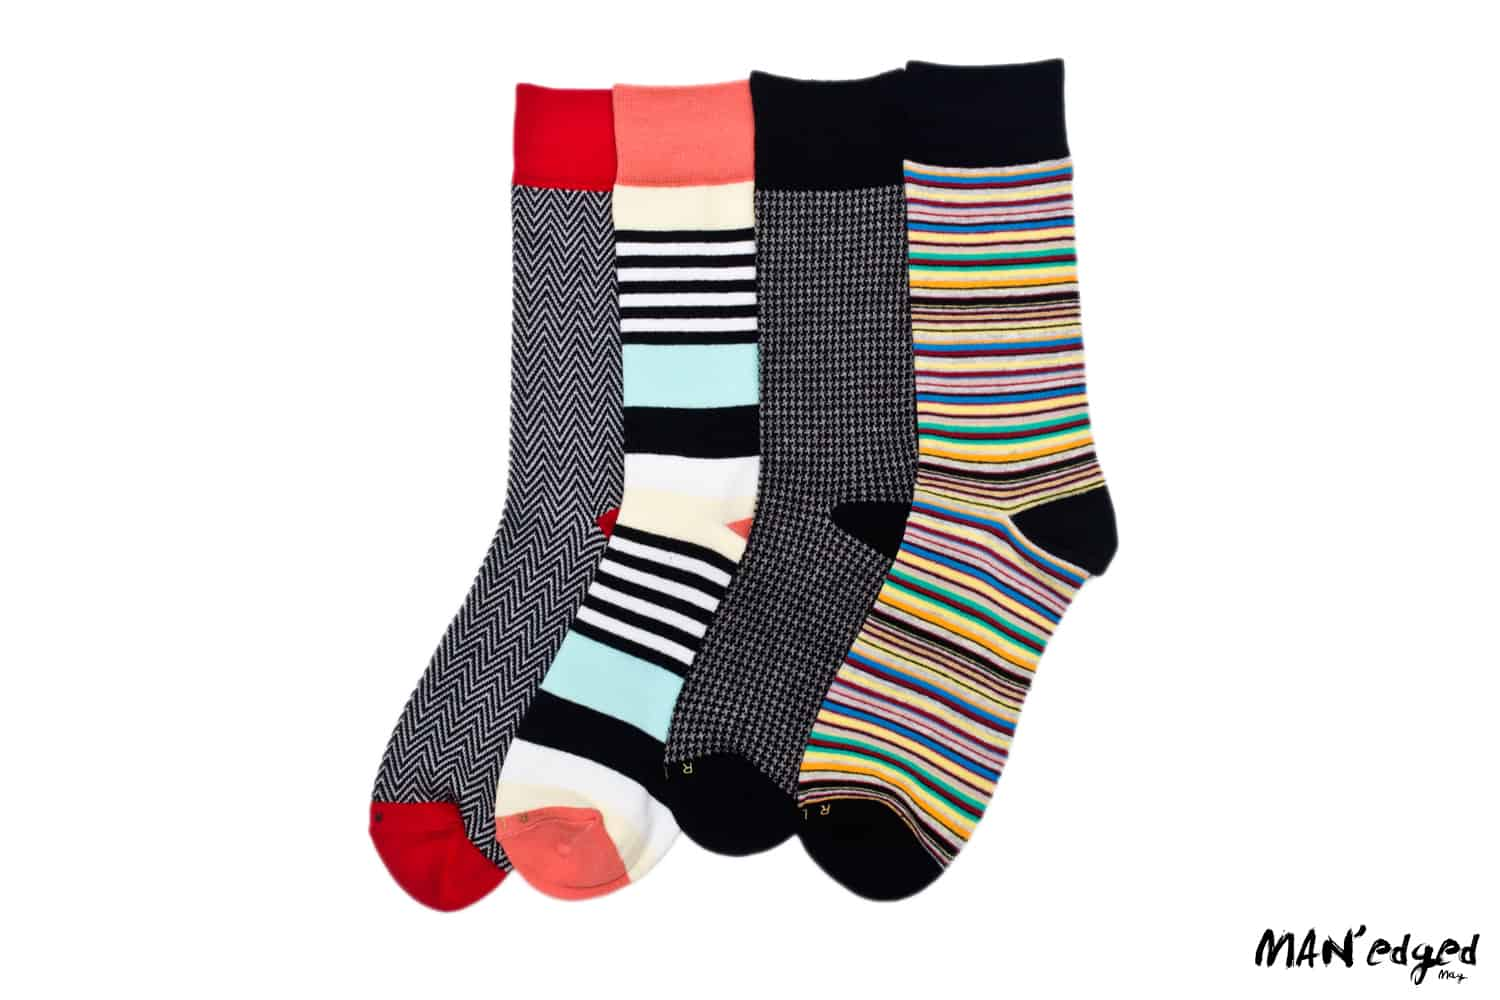 large image of related garment socks, featuring bold men's sock designs and colors